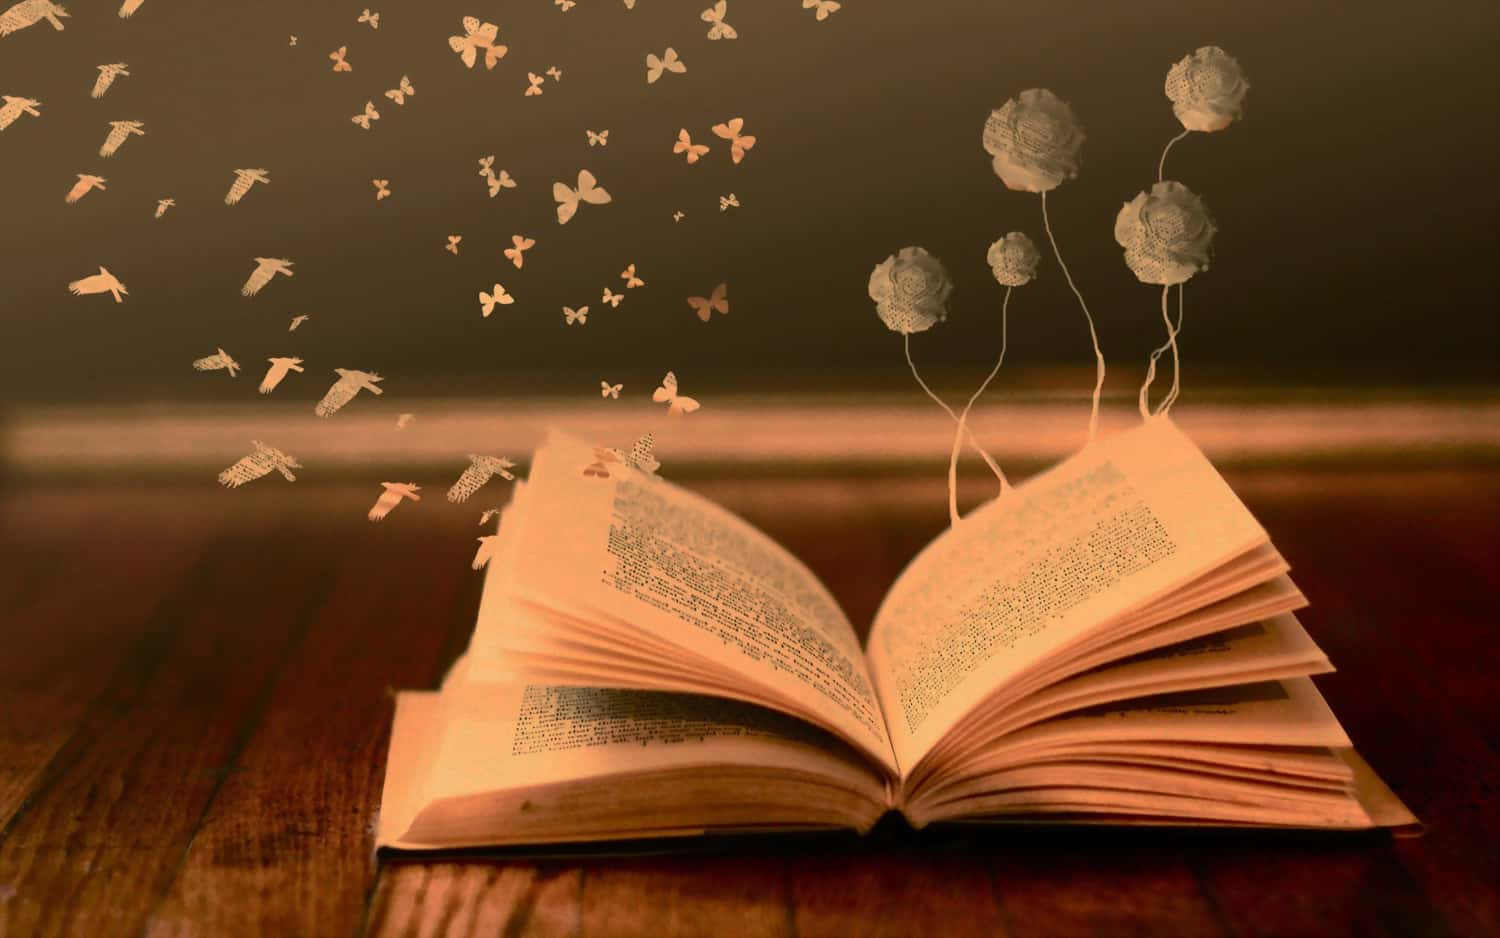 open-book-art-wallpaper-copy-copy.jpg